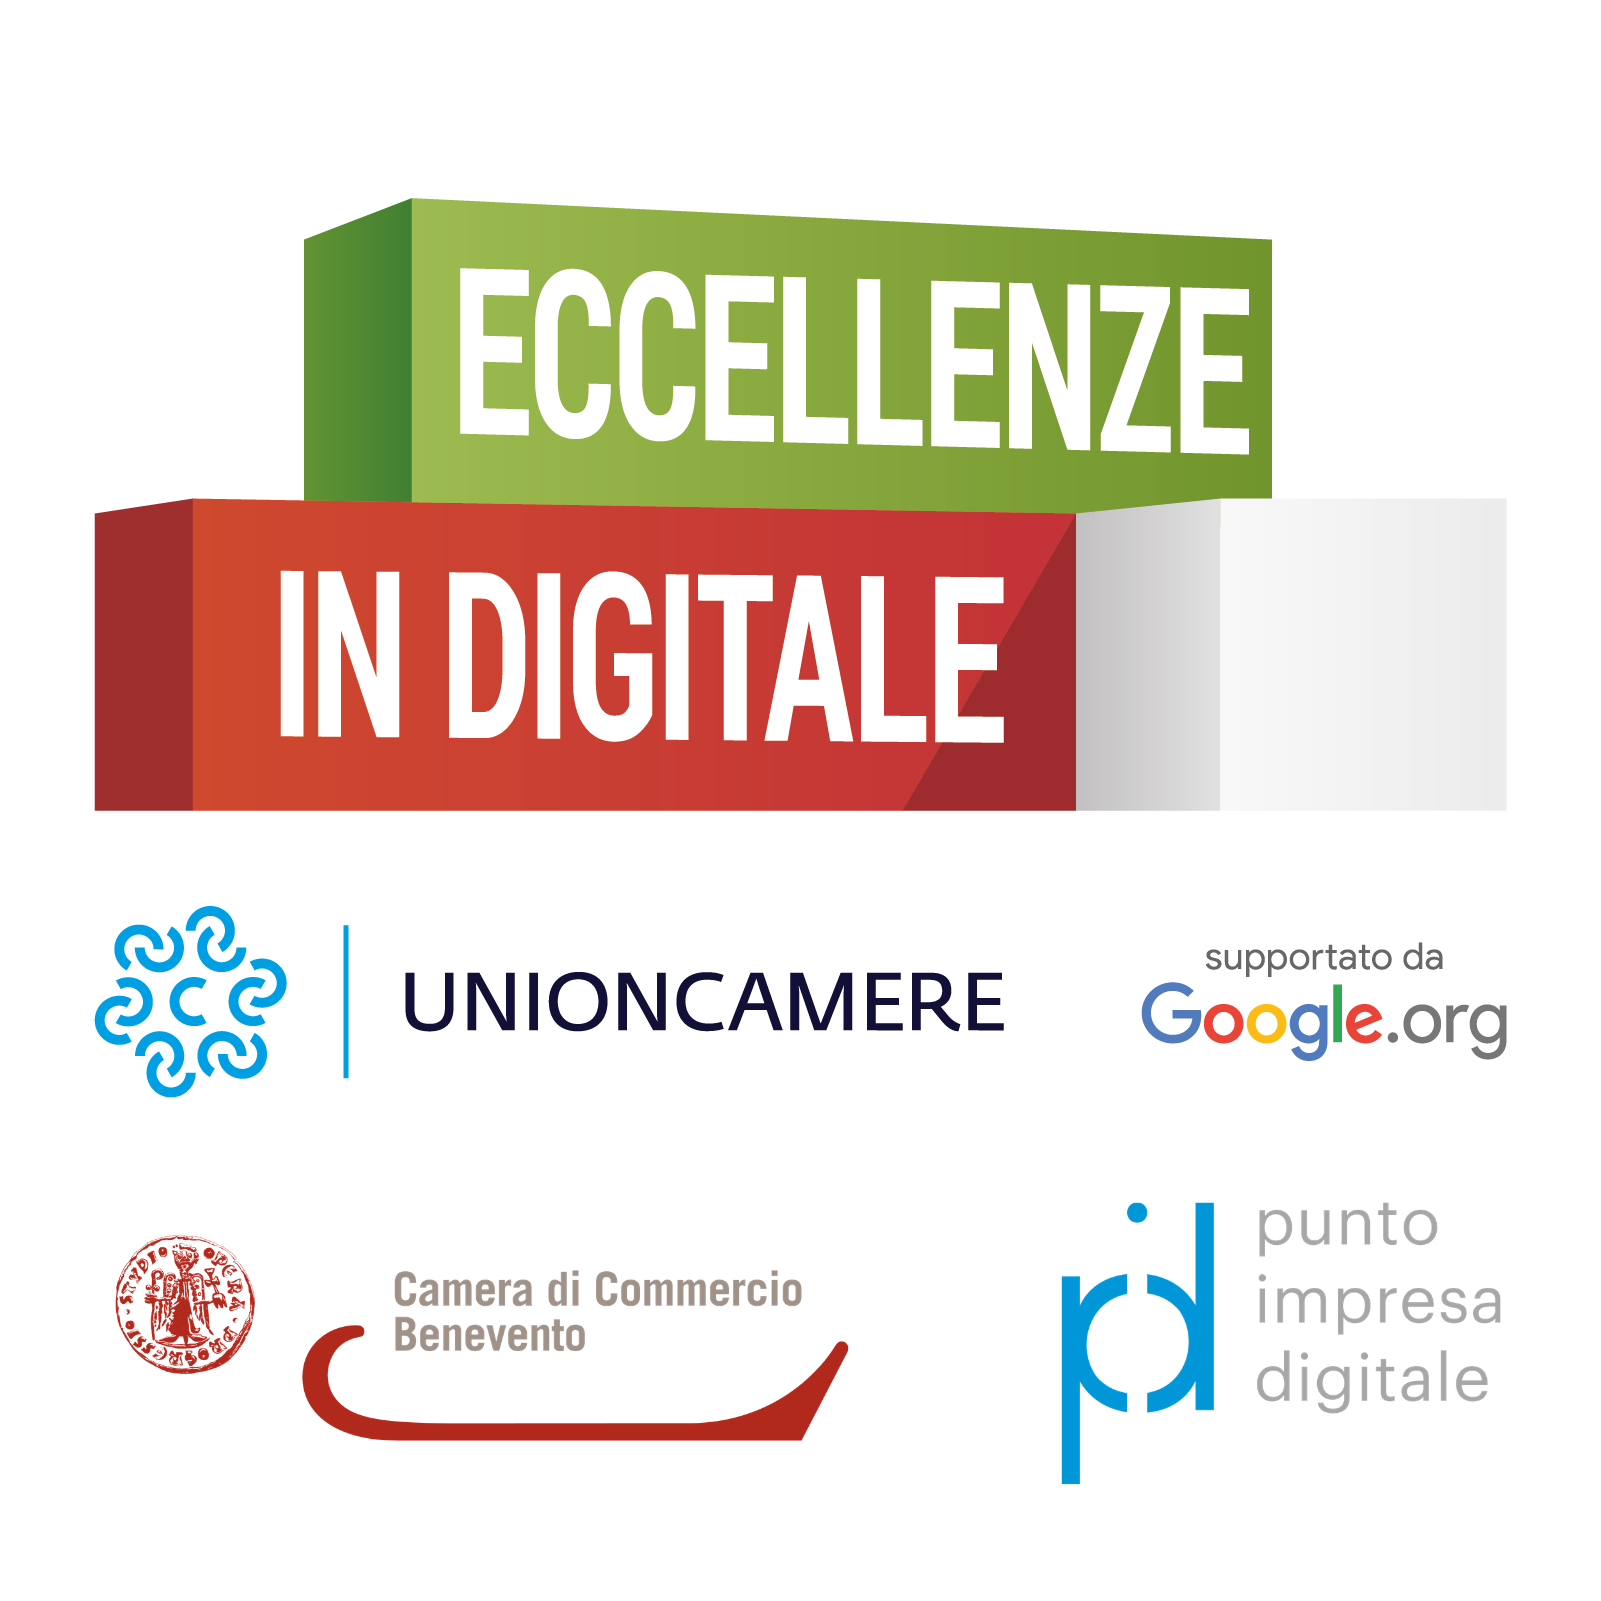 uploaded/EVIDENZA2020/Progetto_Eccellenze_in_Digitale/Logo_Eccellenze_in_Digitale_CCIAA_BN.png